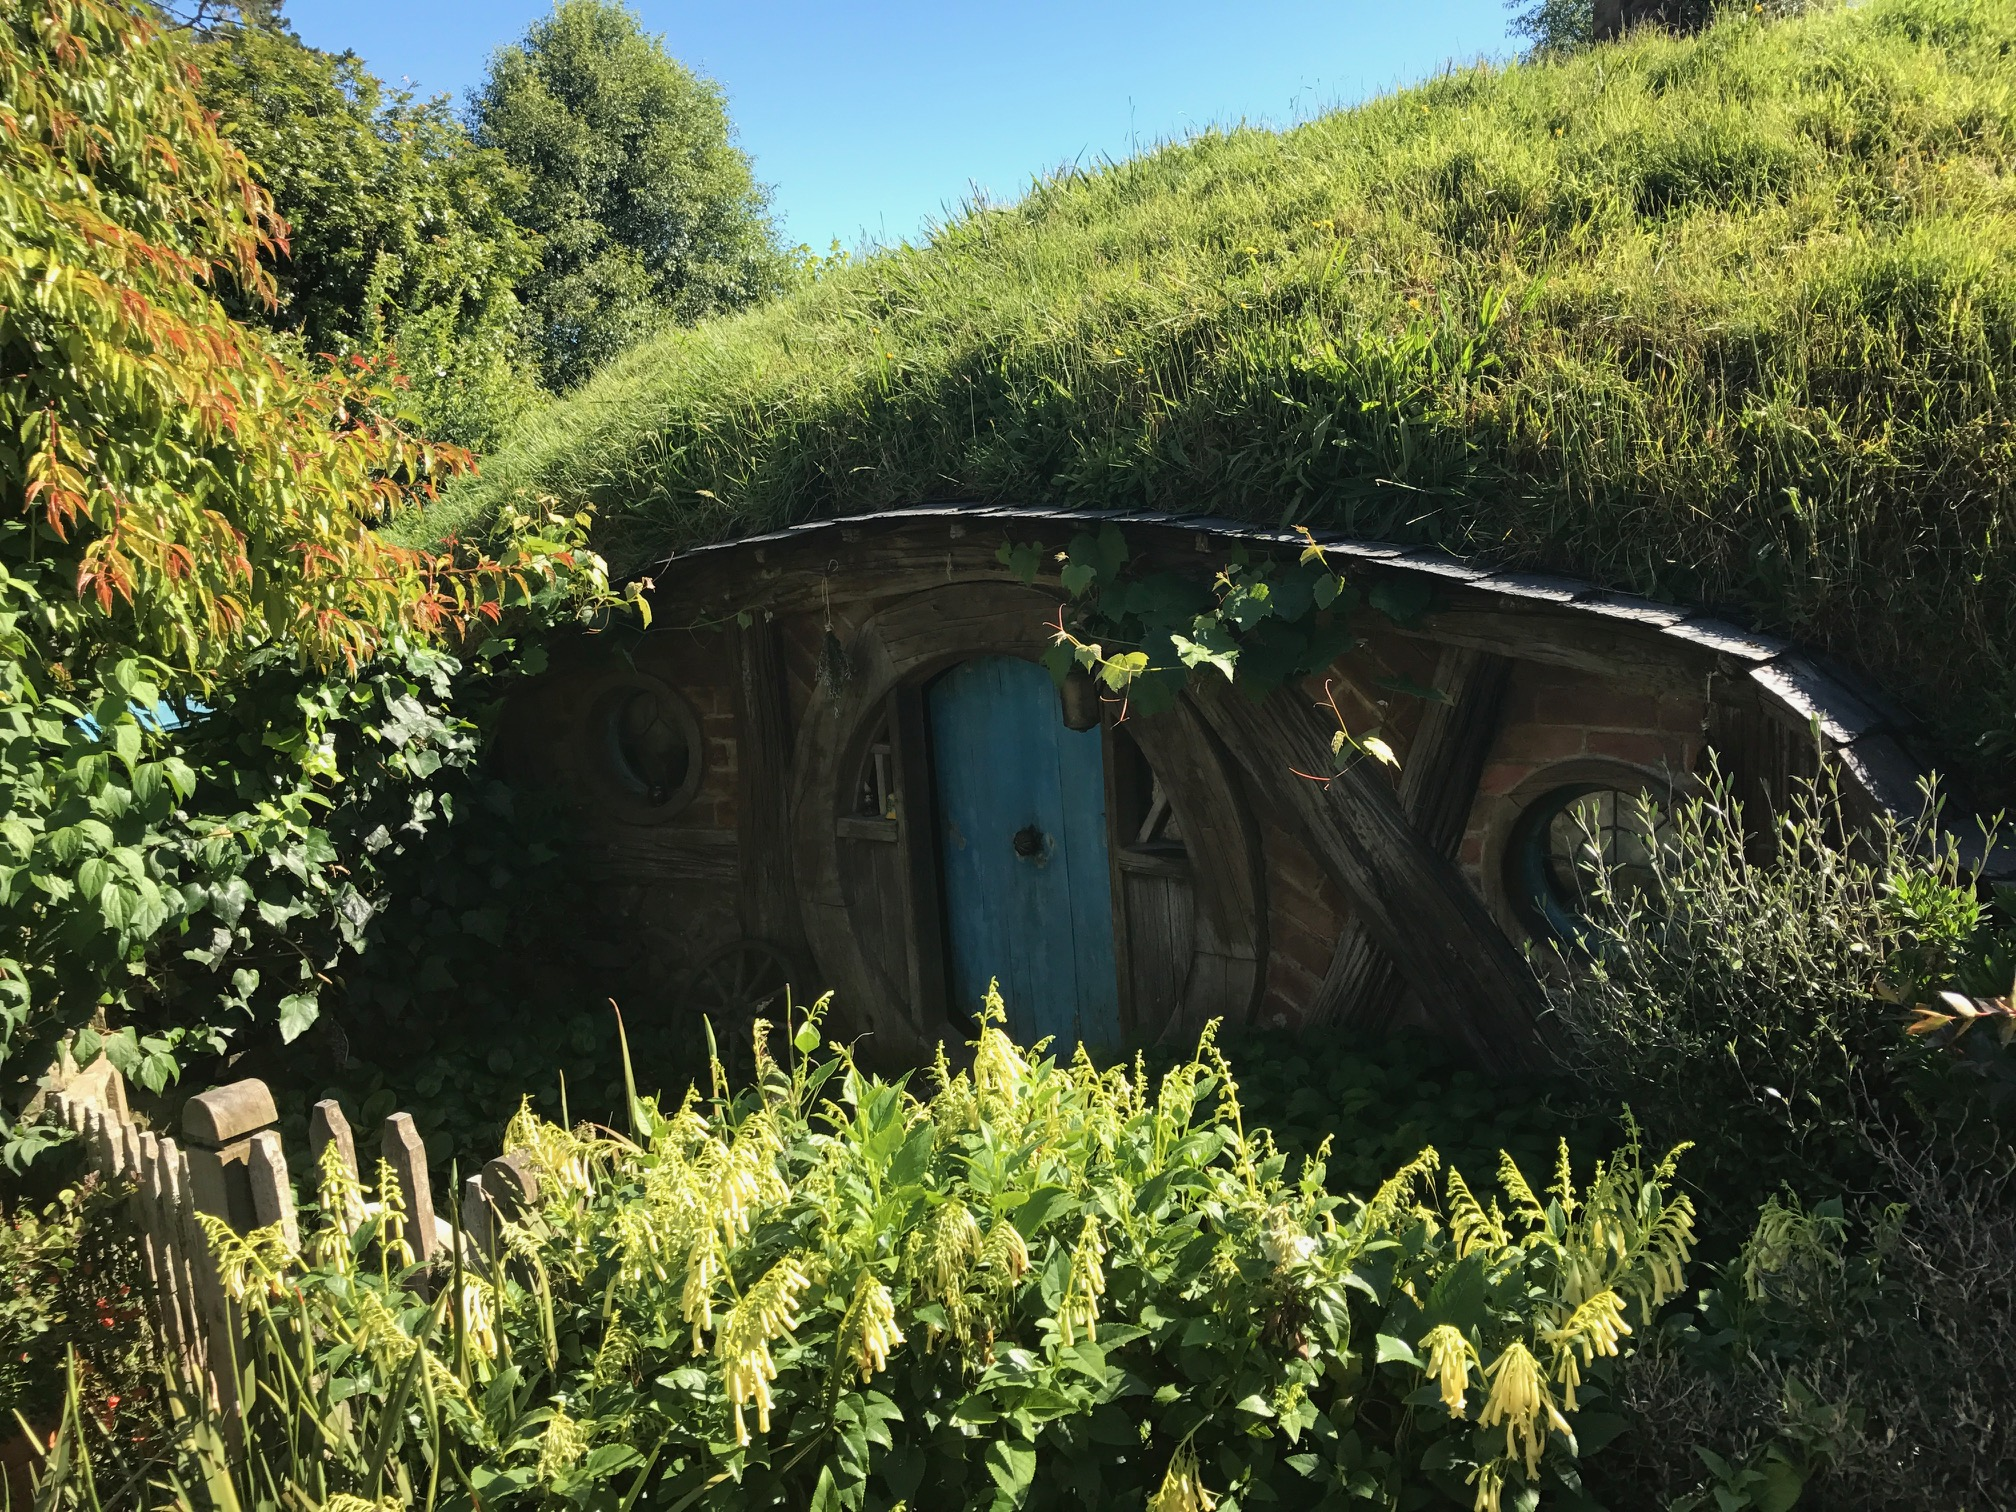 Hobbit Hole in Hobbiton Movie Set